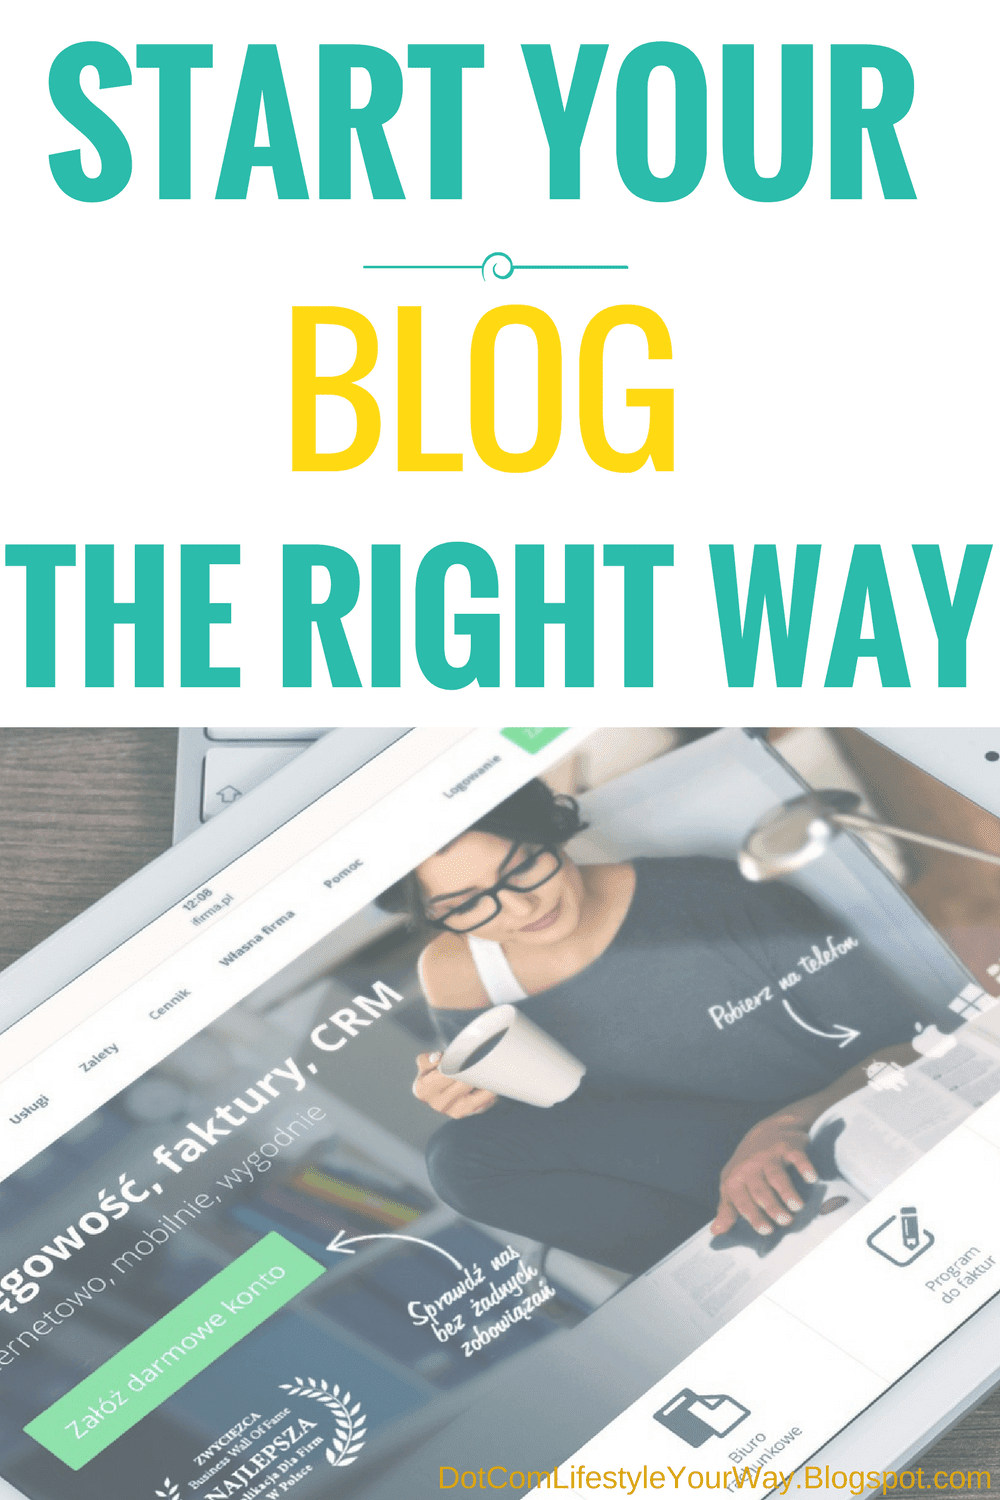 Use this tutorial to start your blog or website the right way.There's a ton of information, so go ahead and bookmark and pin for for later. Happy blogging and the best of luck to you and your business! Feel free to come again for more helpful tips to continue growing your business.